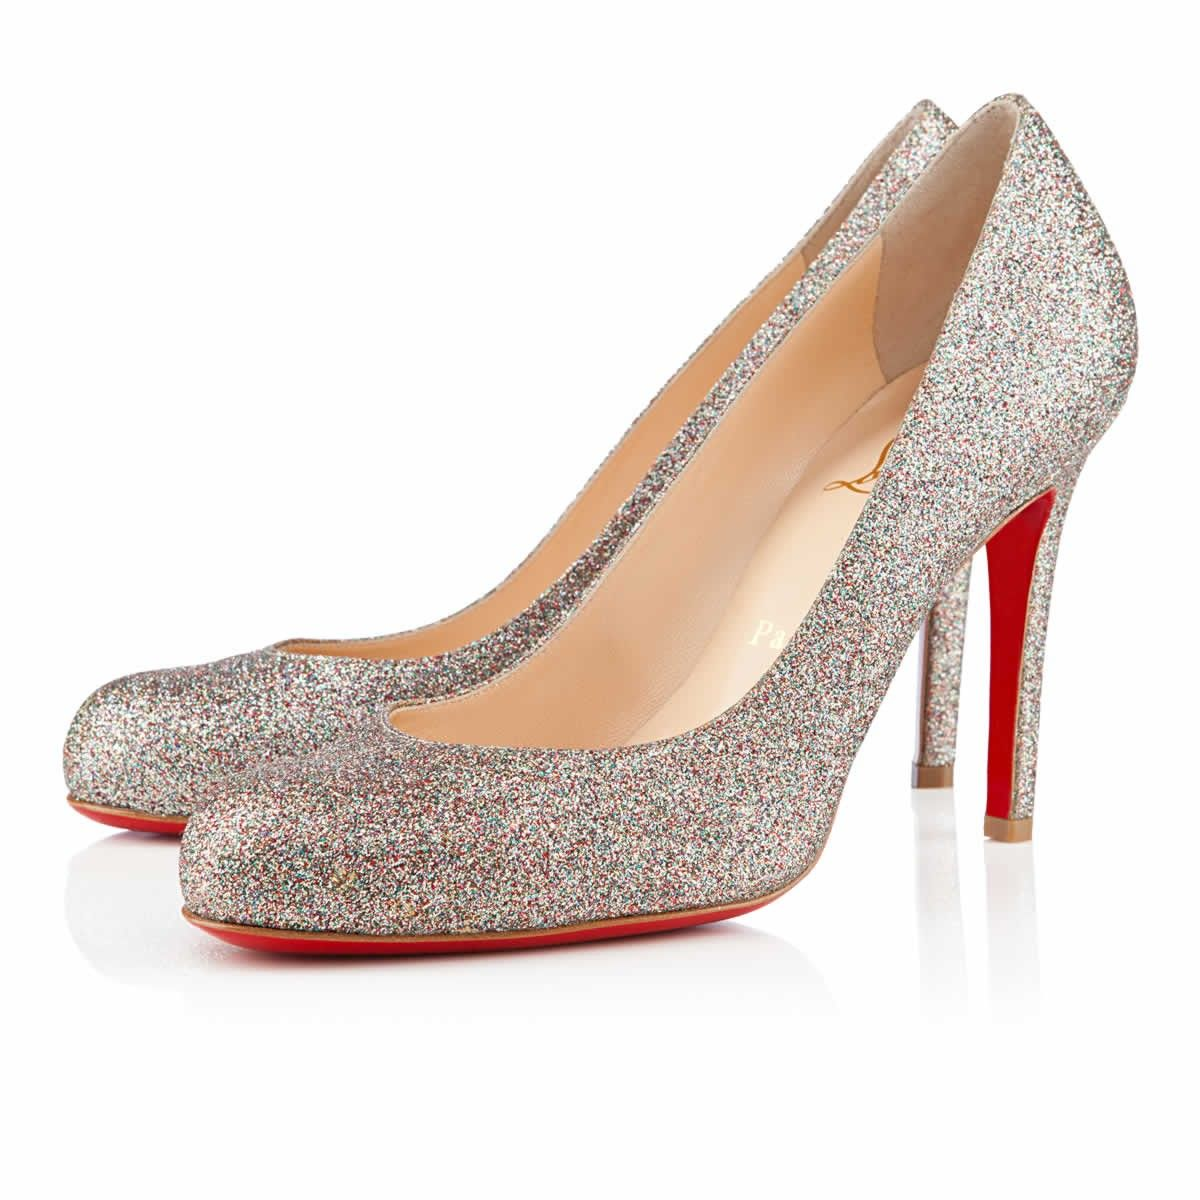 christian louboutin glitter simple bridal pumps